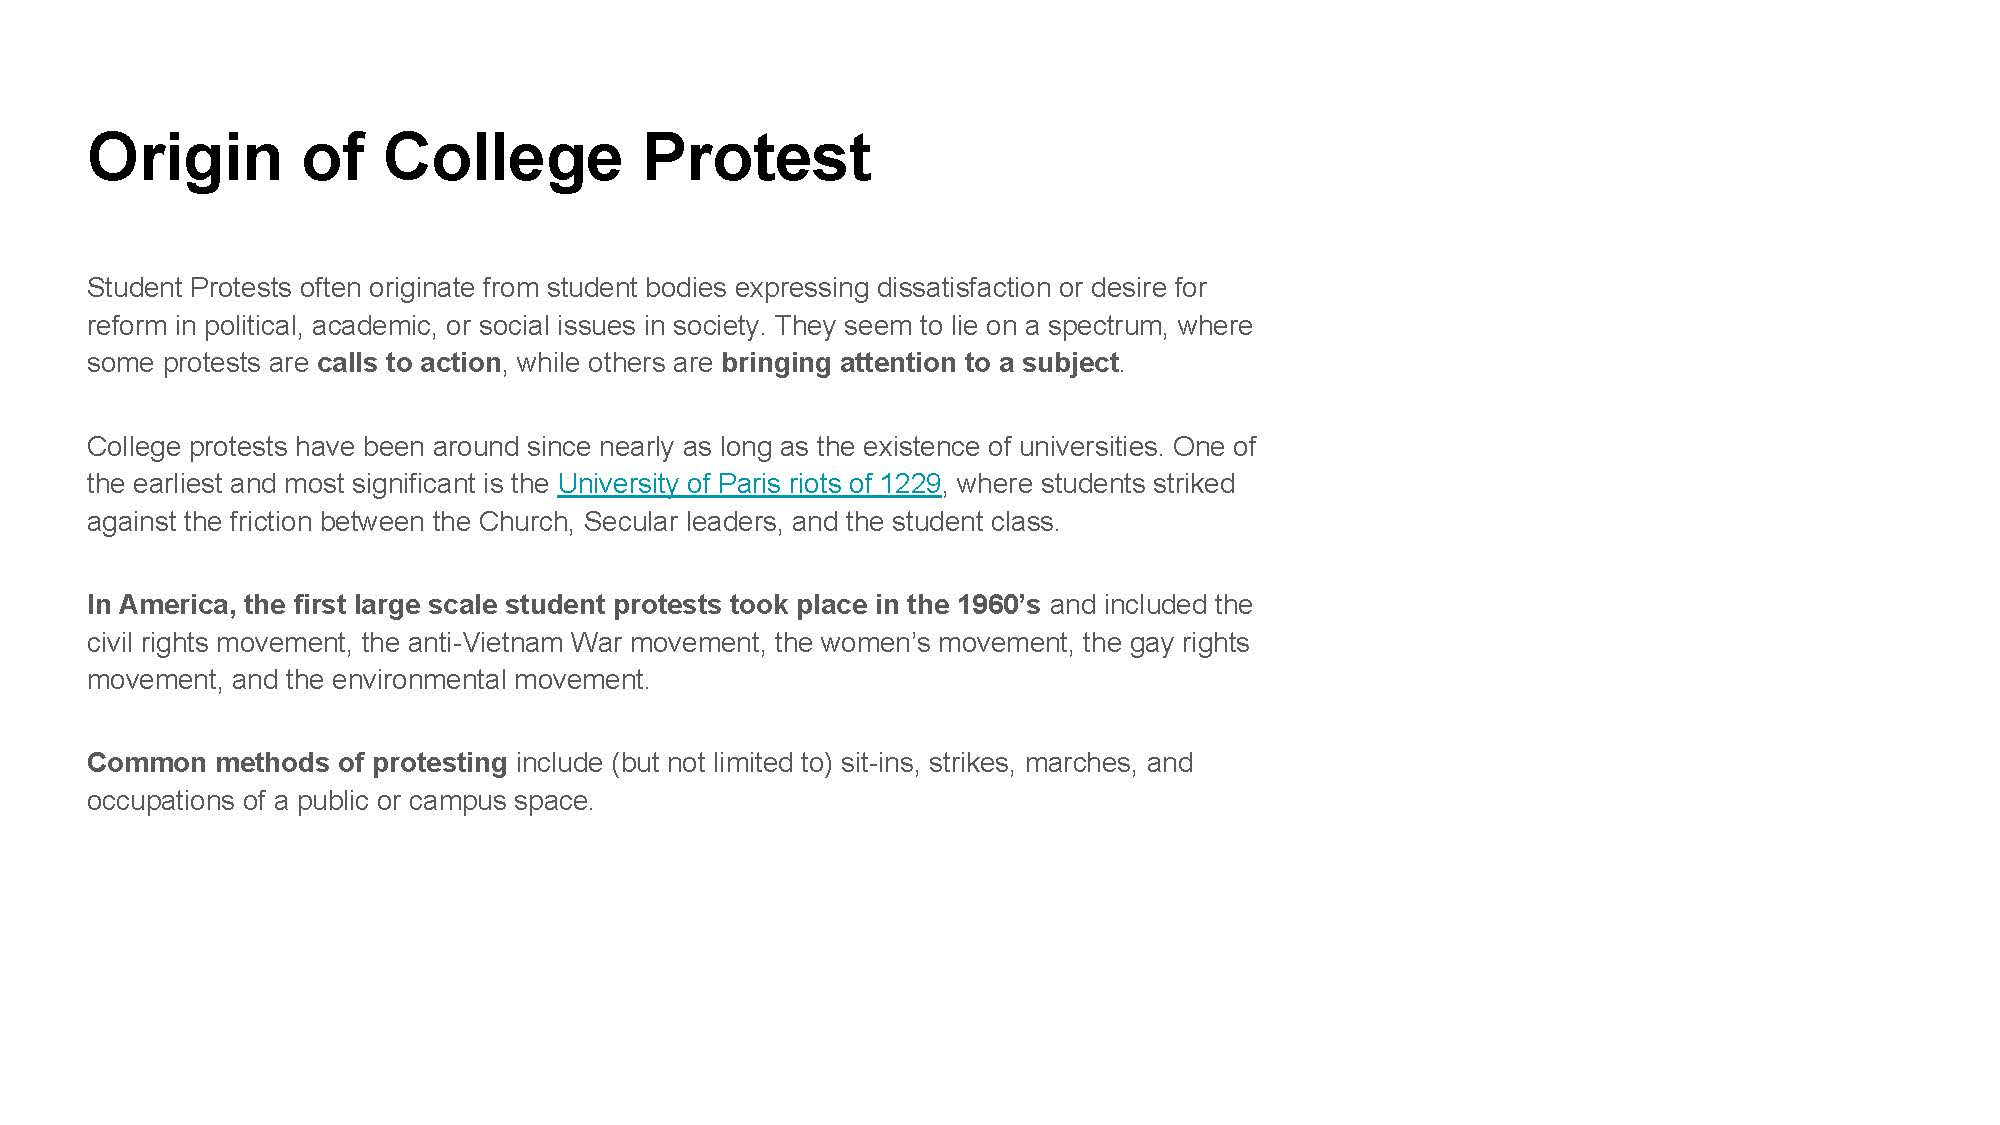 History of College Protest in the US_Page_03.jpg